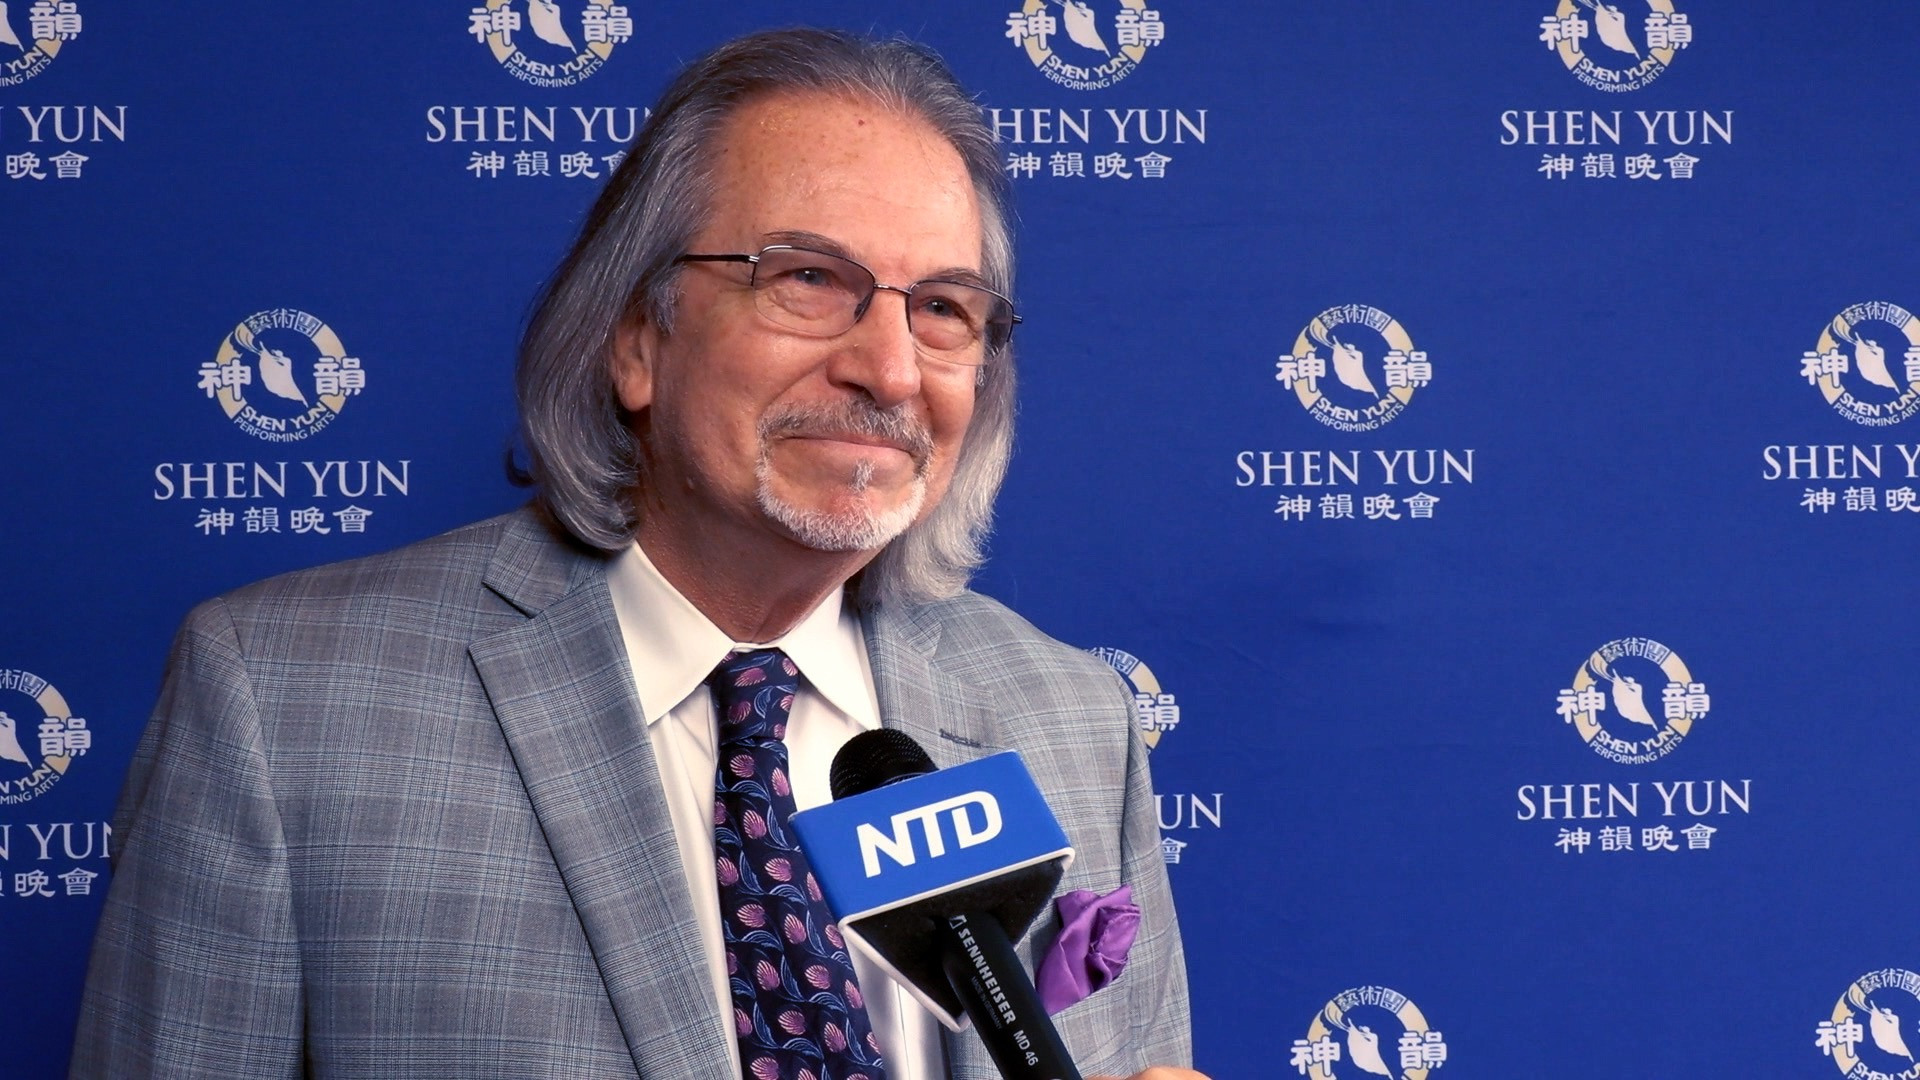 Long-Awaited Return of Shen Yun: Audience Brought to Tears